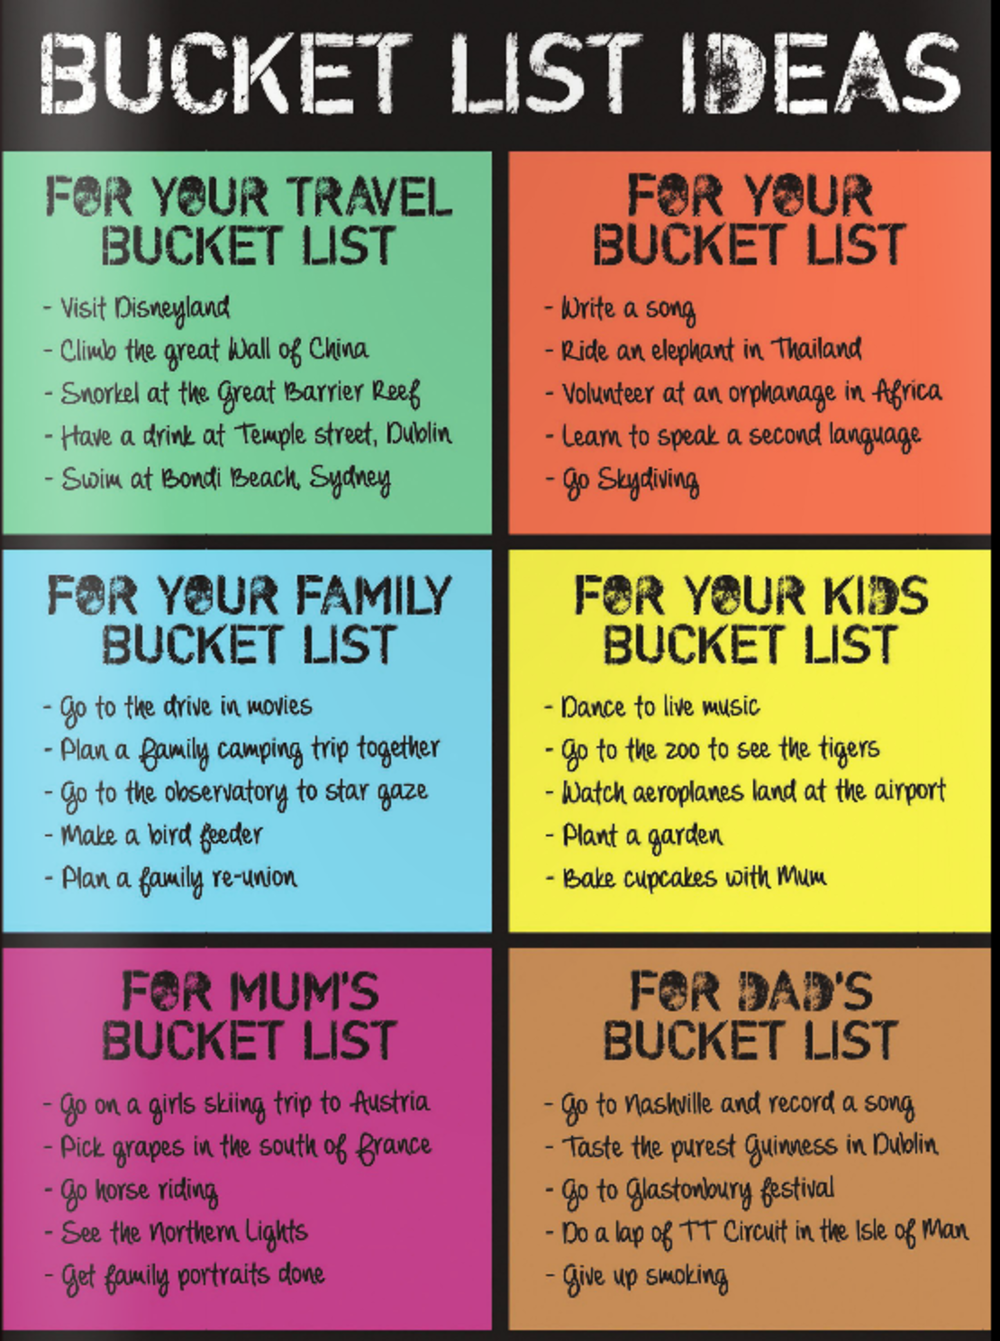 Ultimate Bucket List Ideas: 100 Things to Do before You Die